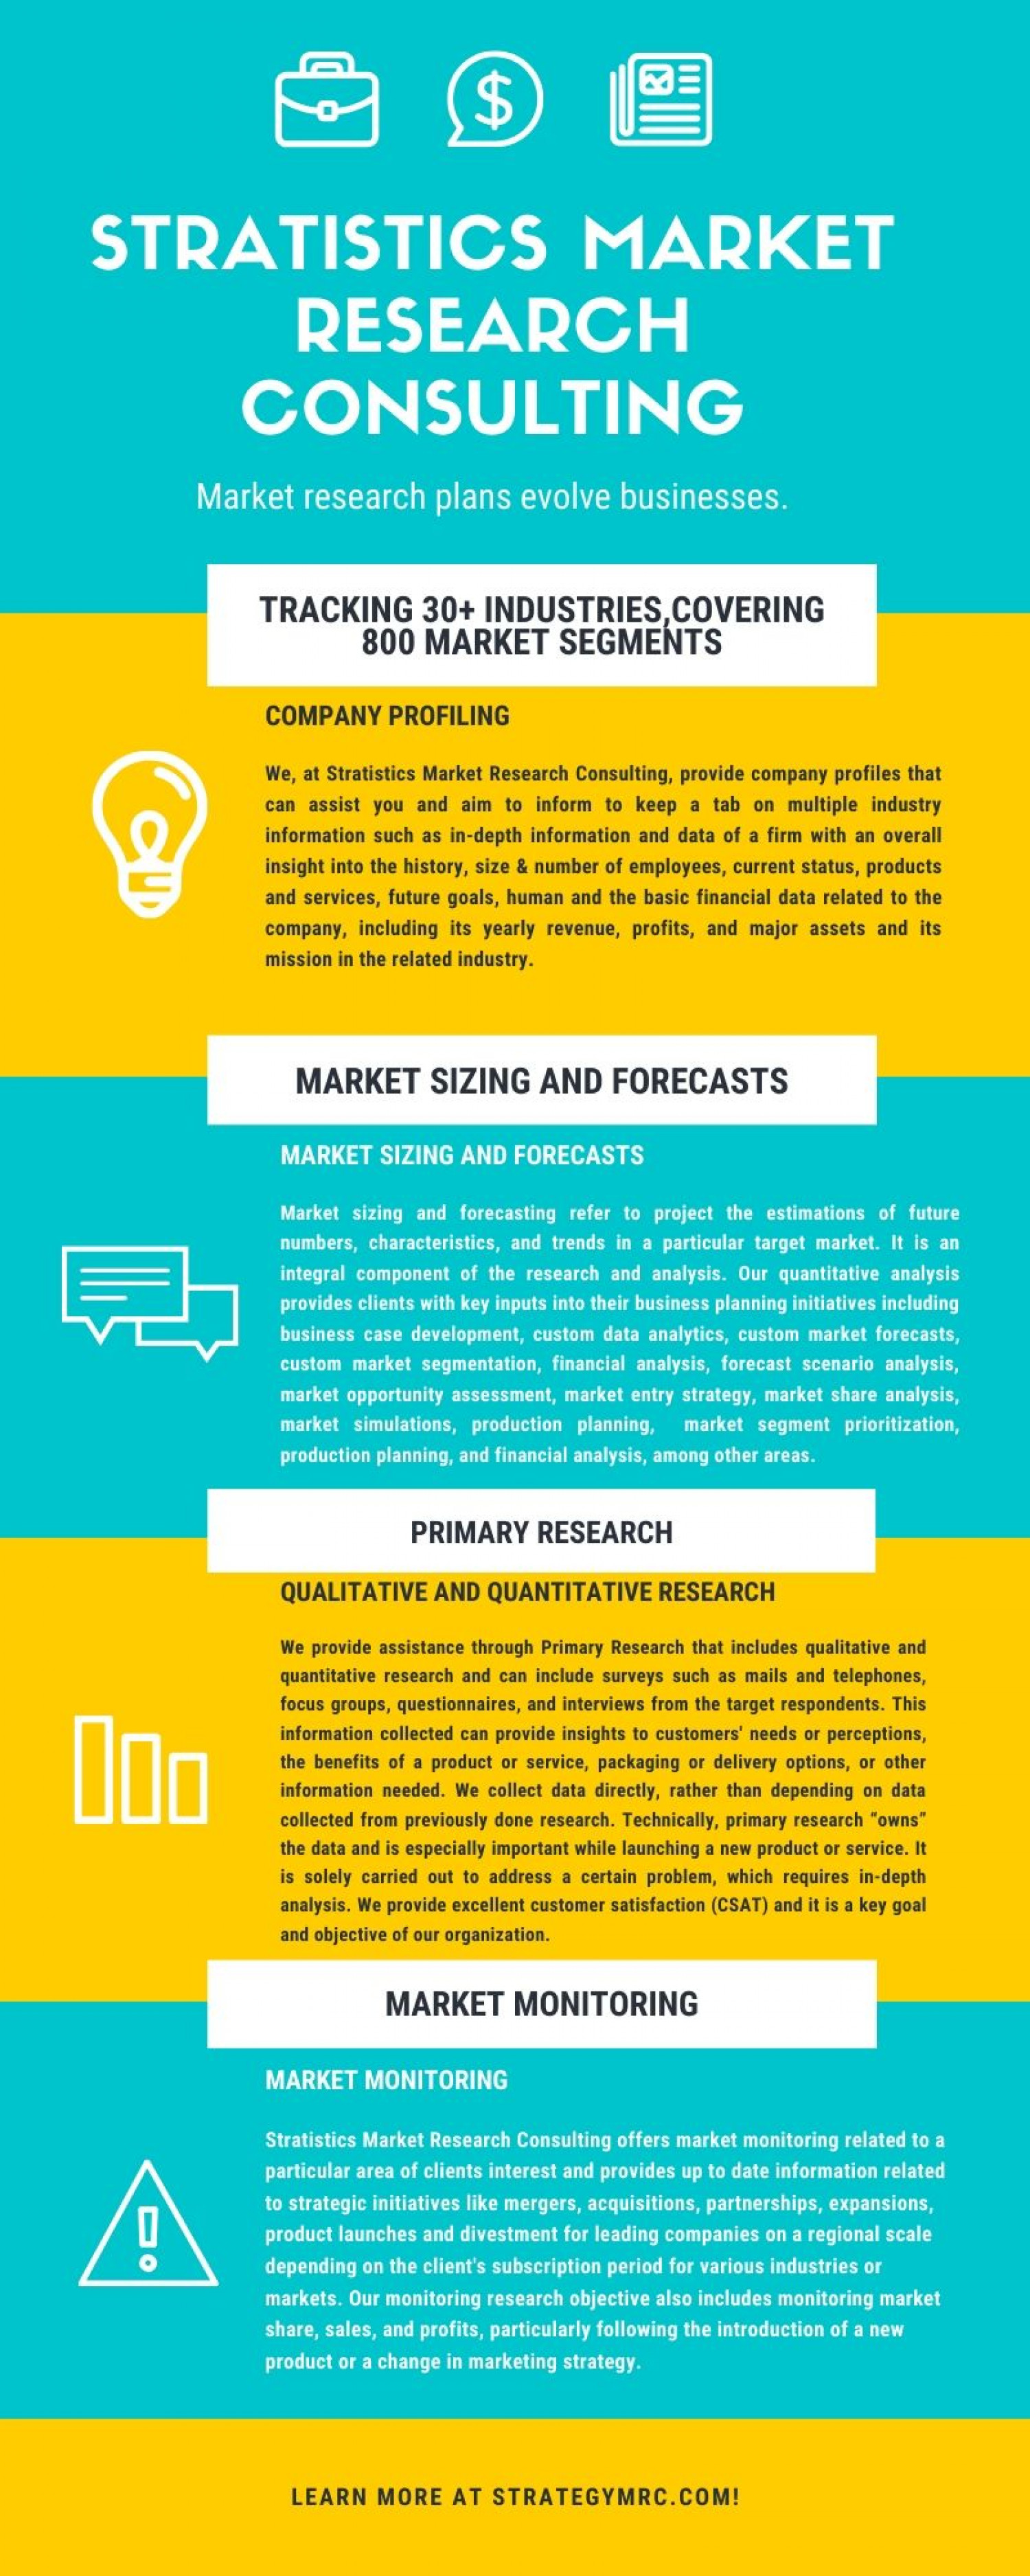 Stratistics Market Research consulting Infographic